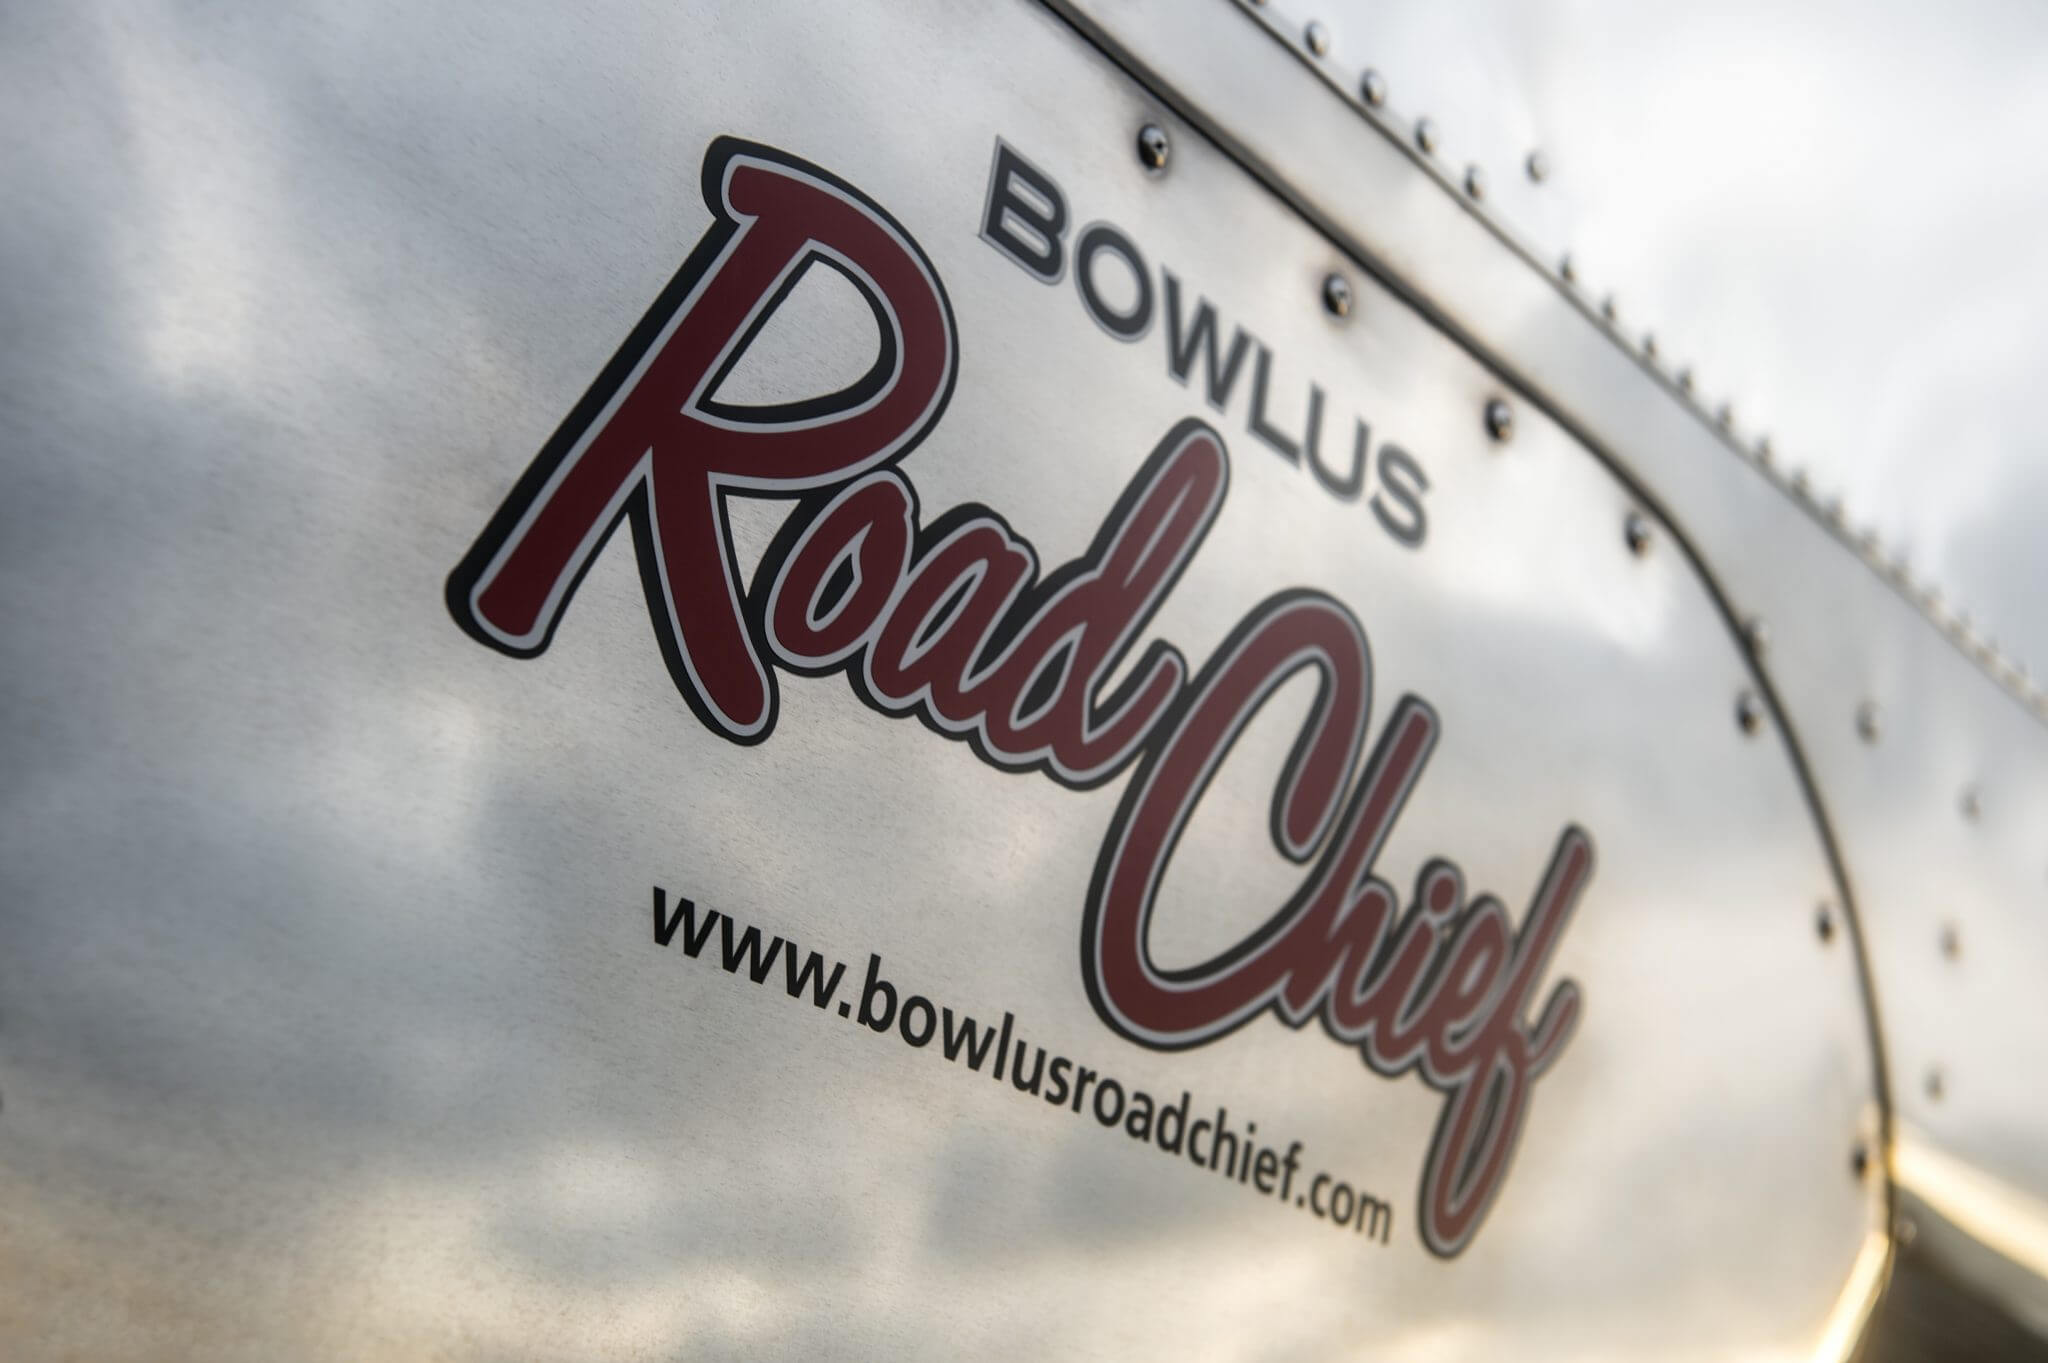 Naming Your Bowlus Road Chief